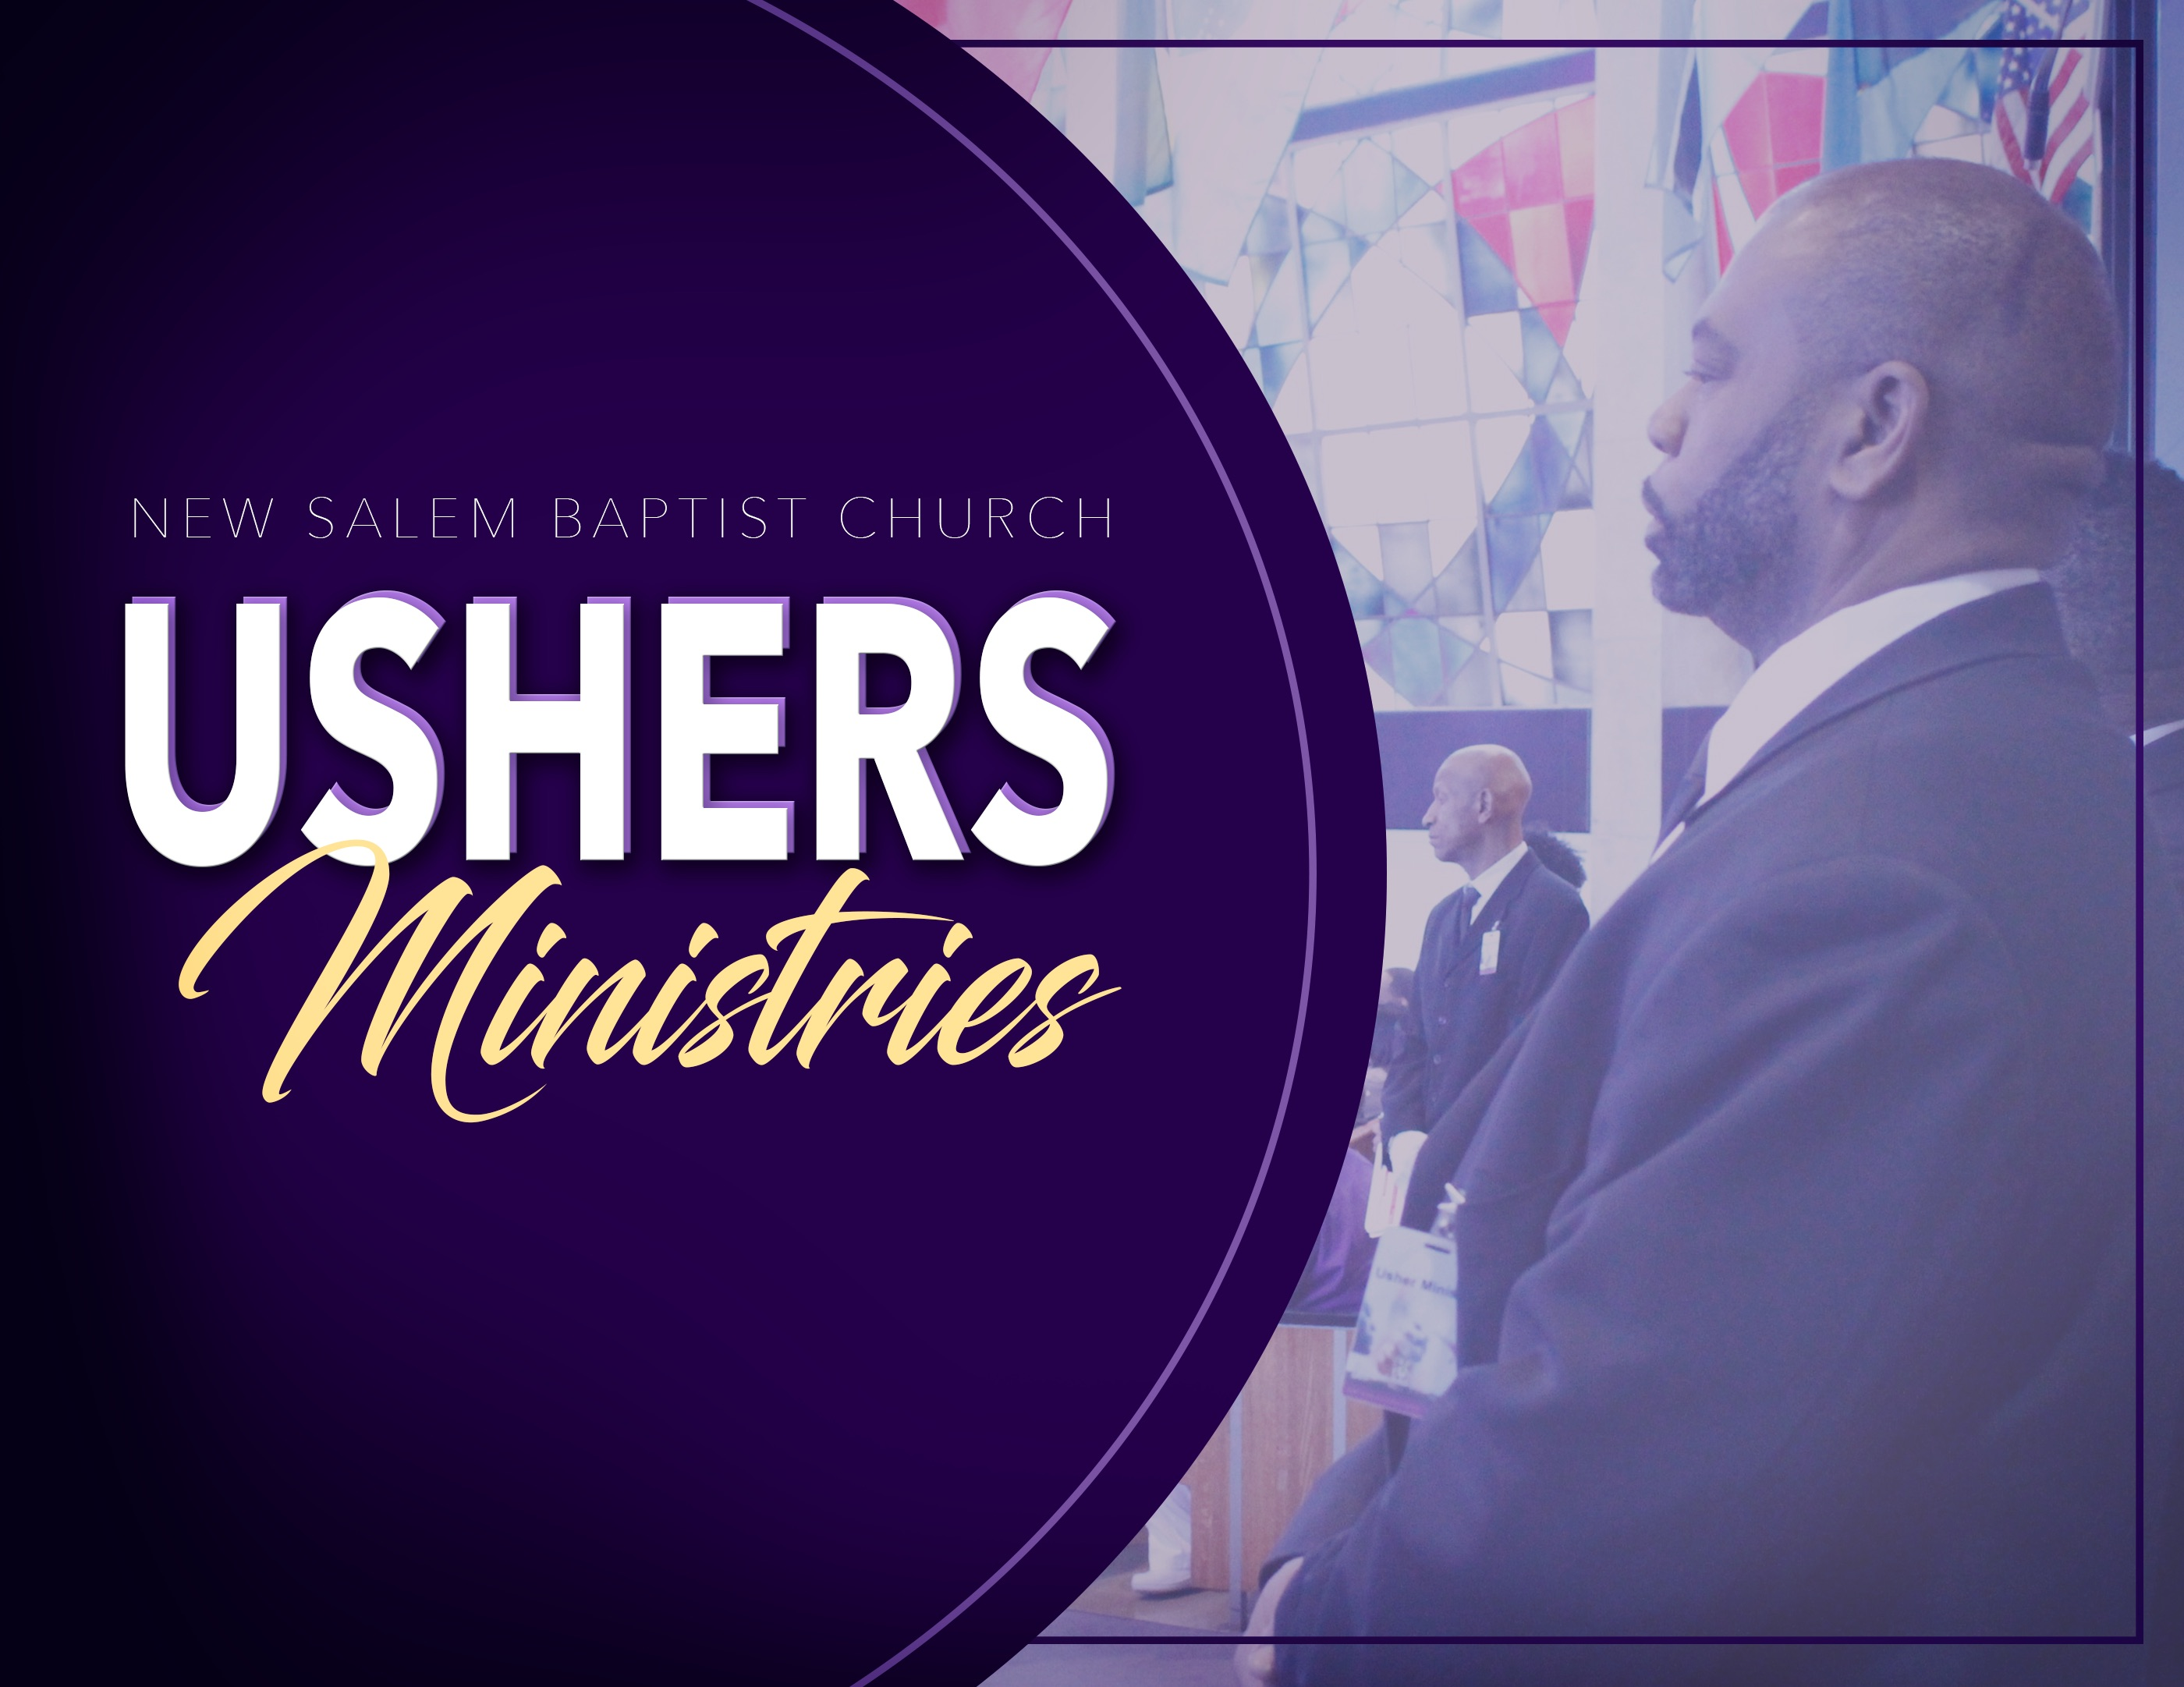 Ushers Ministries